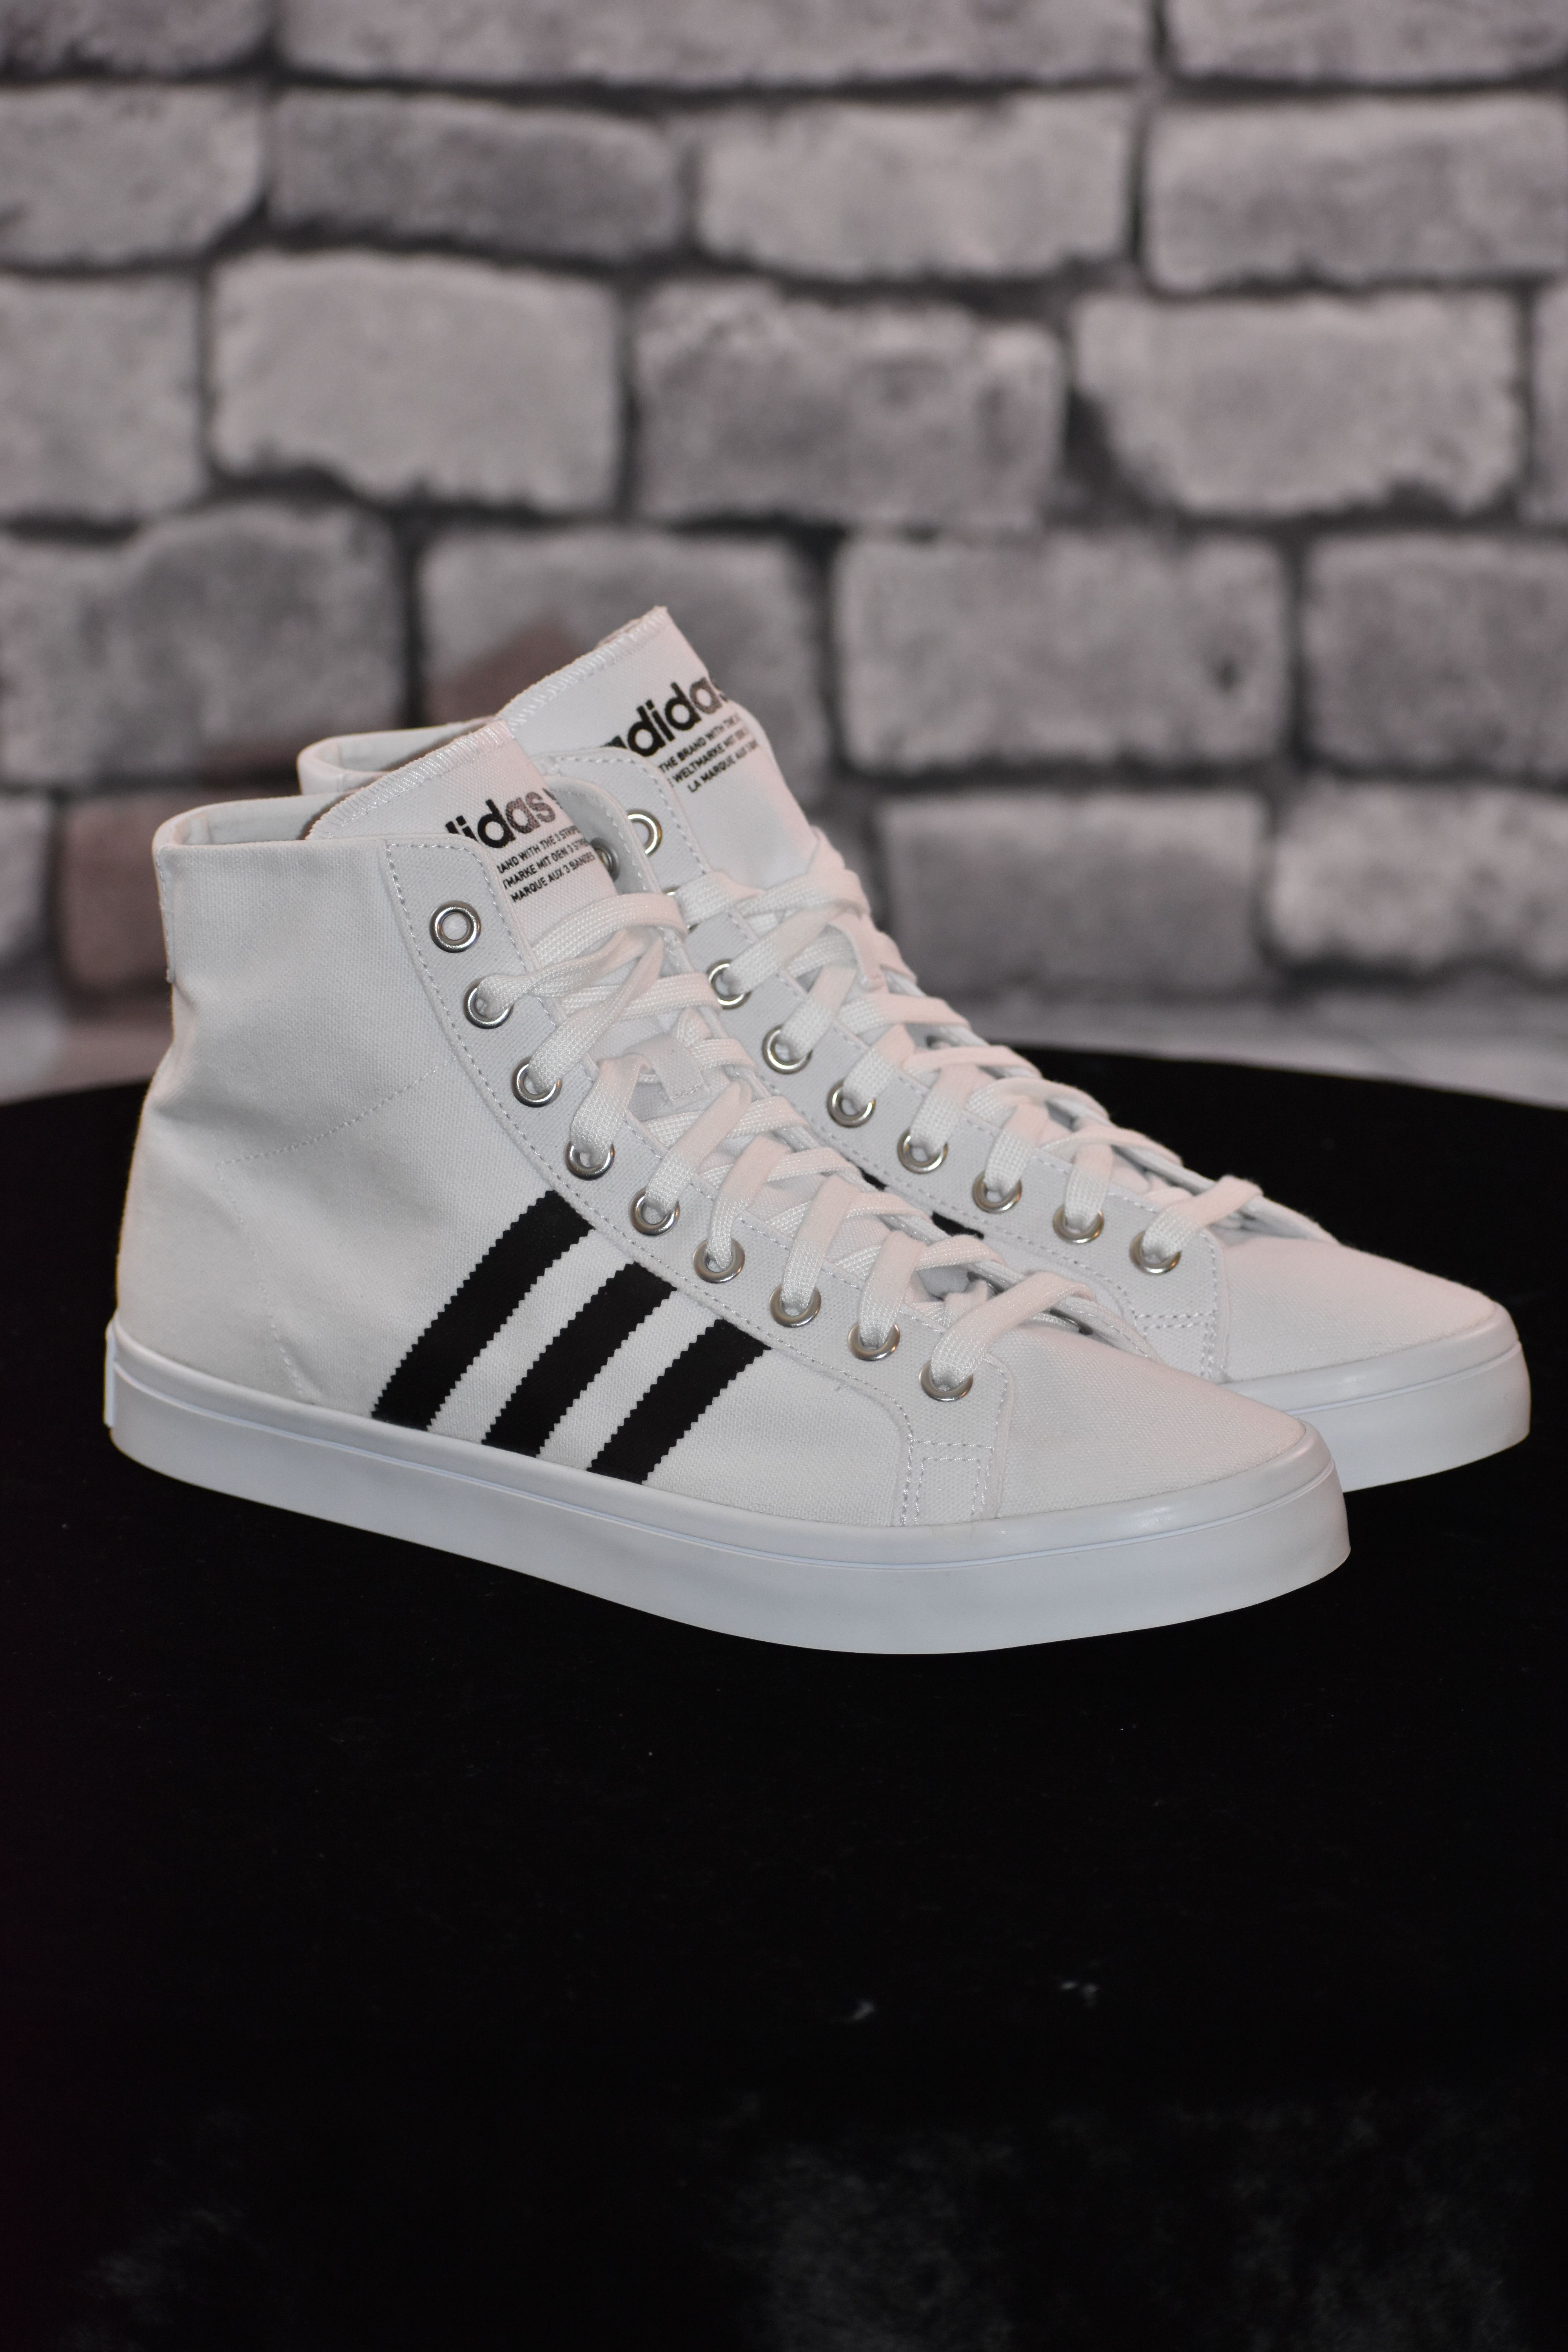 ADIDAS MENS BLACK & WHITE SNEAKERS SIZE US 11  BRAND NEW